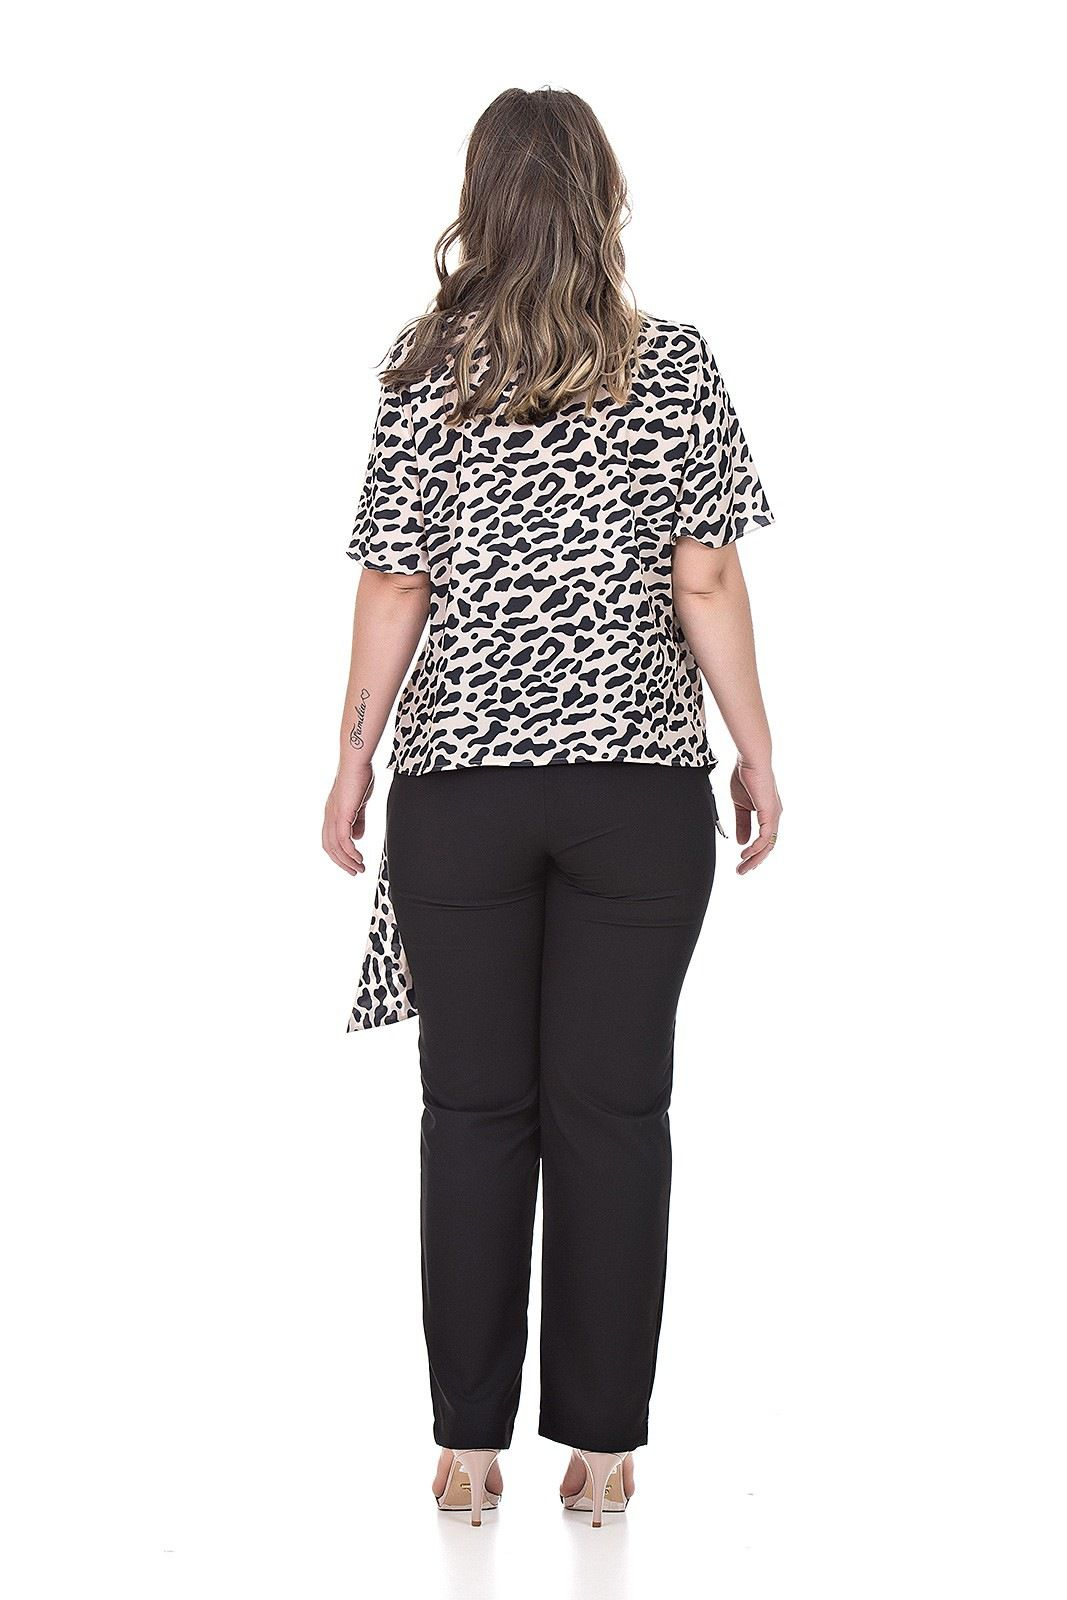 Blusa Cashecower plus size